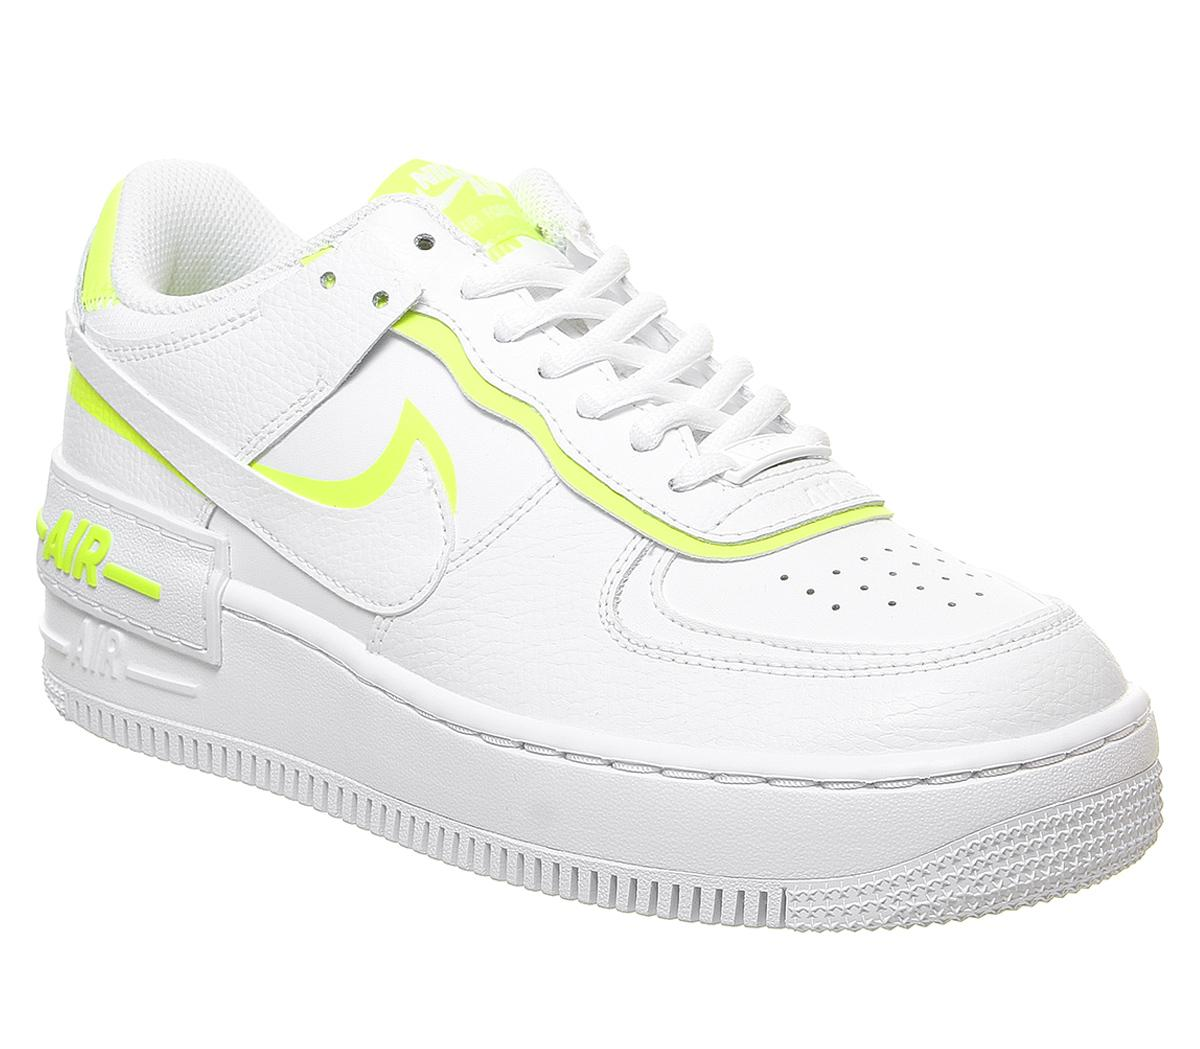 Nike Air Force 1 Shadow Trainers White Lemon Venom Hers Trainers Toggle shop by store button. air force 1 shadow trainers